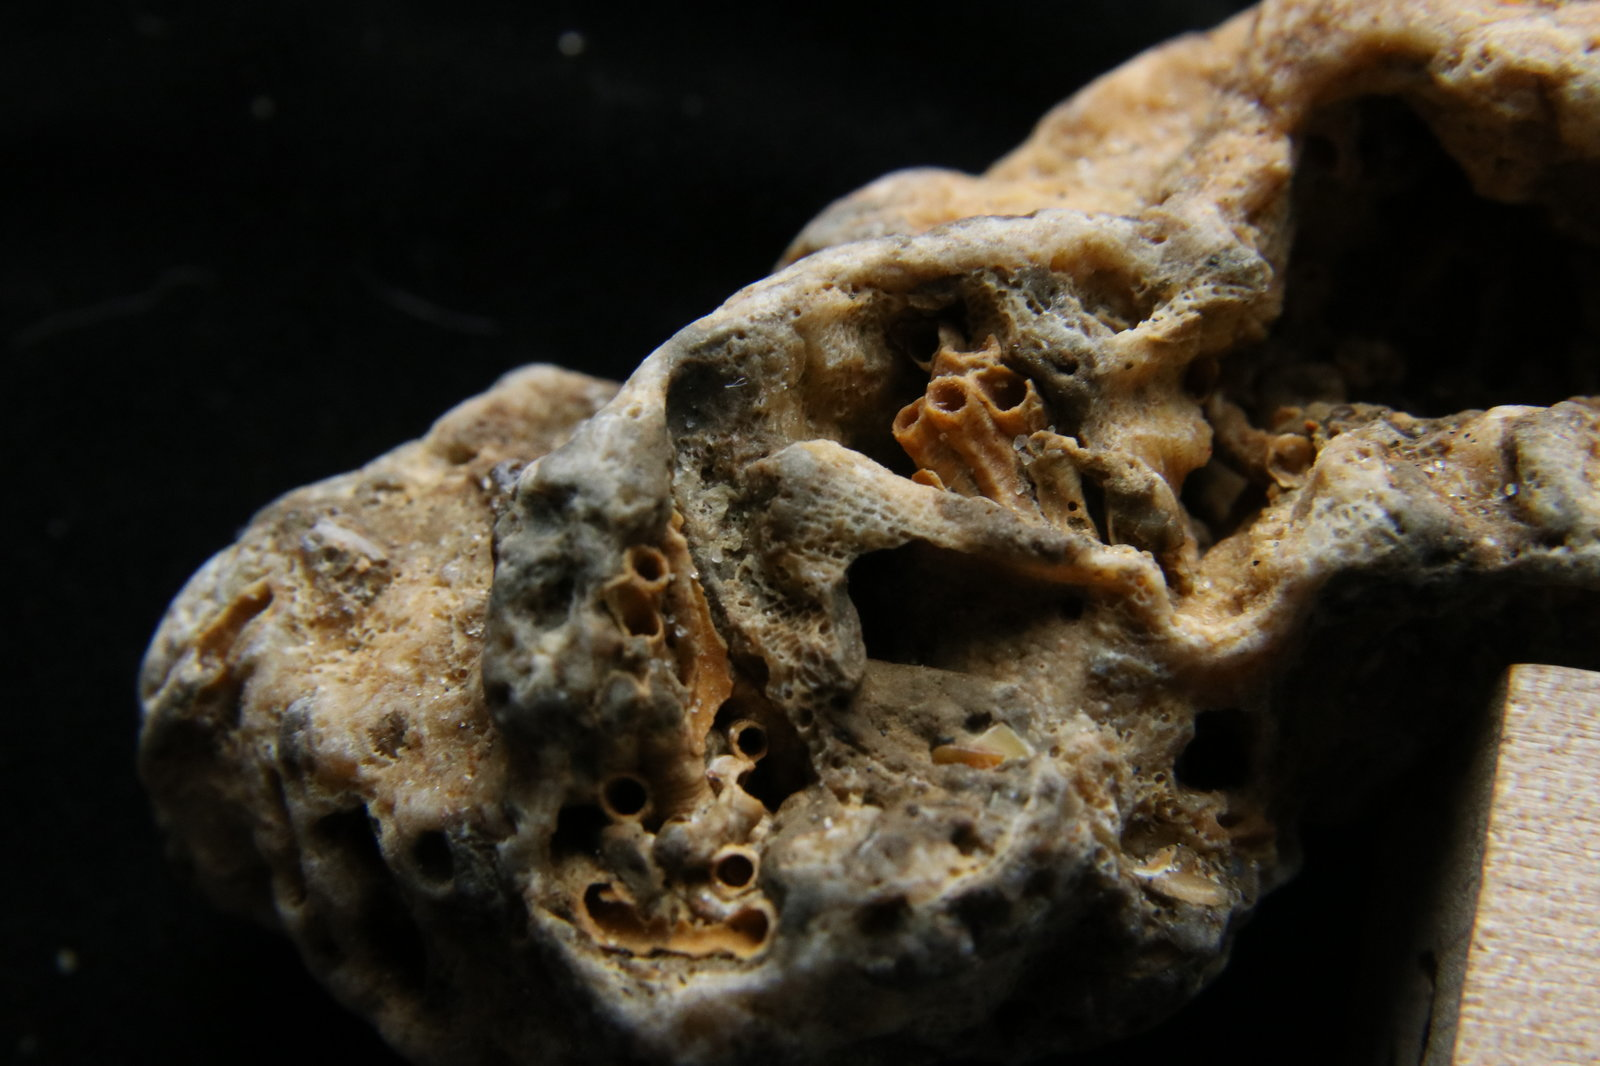 Fossil Tube Worms, Cape Hatteras